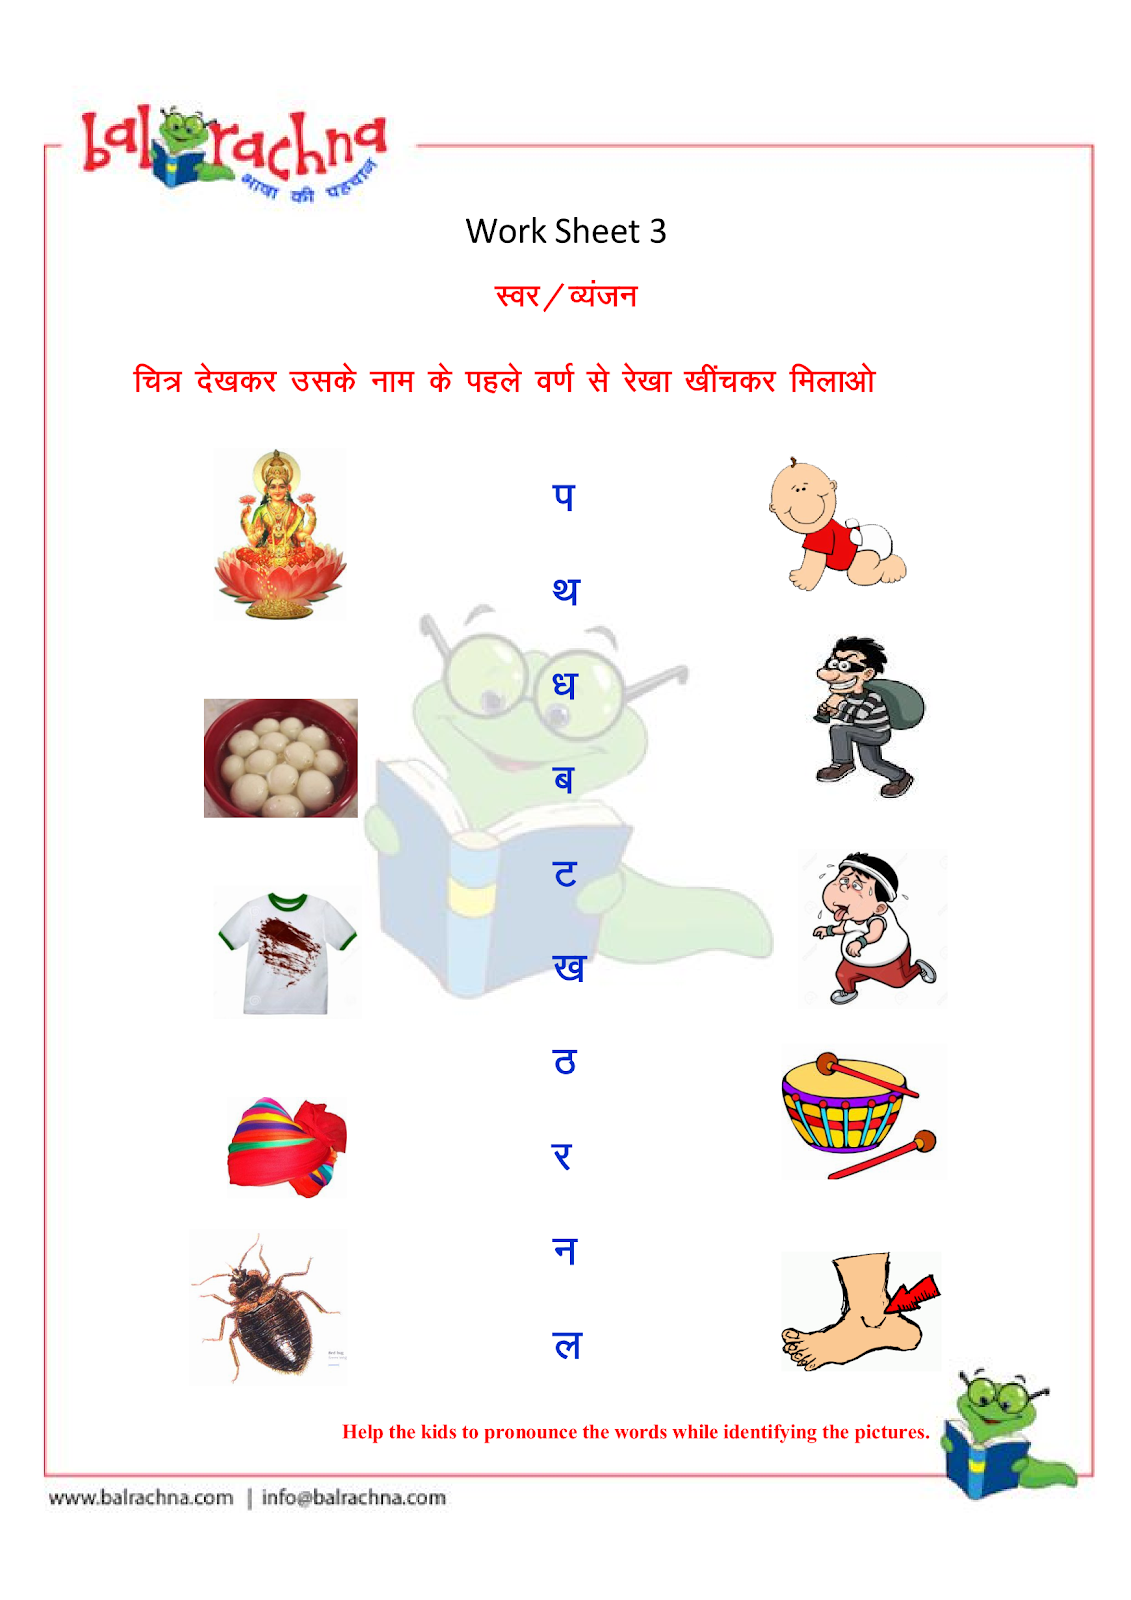 Hindi Swar Circling Worksheet Printable Worksheets And Activities For Teachers Parents Tutors And Homeschool Families